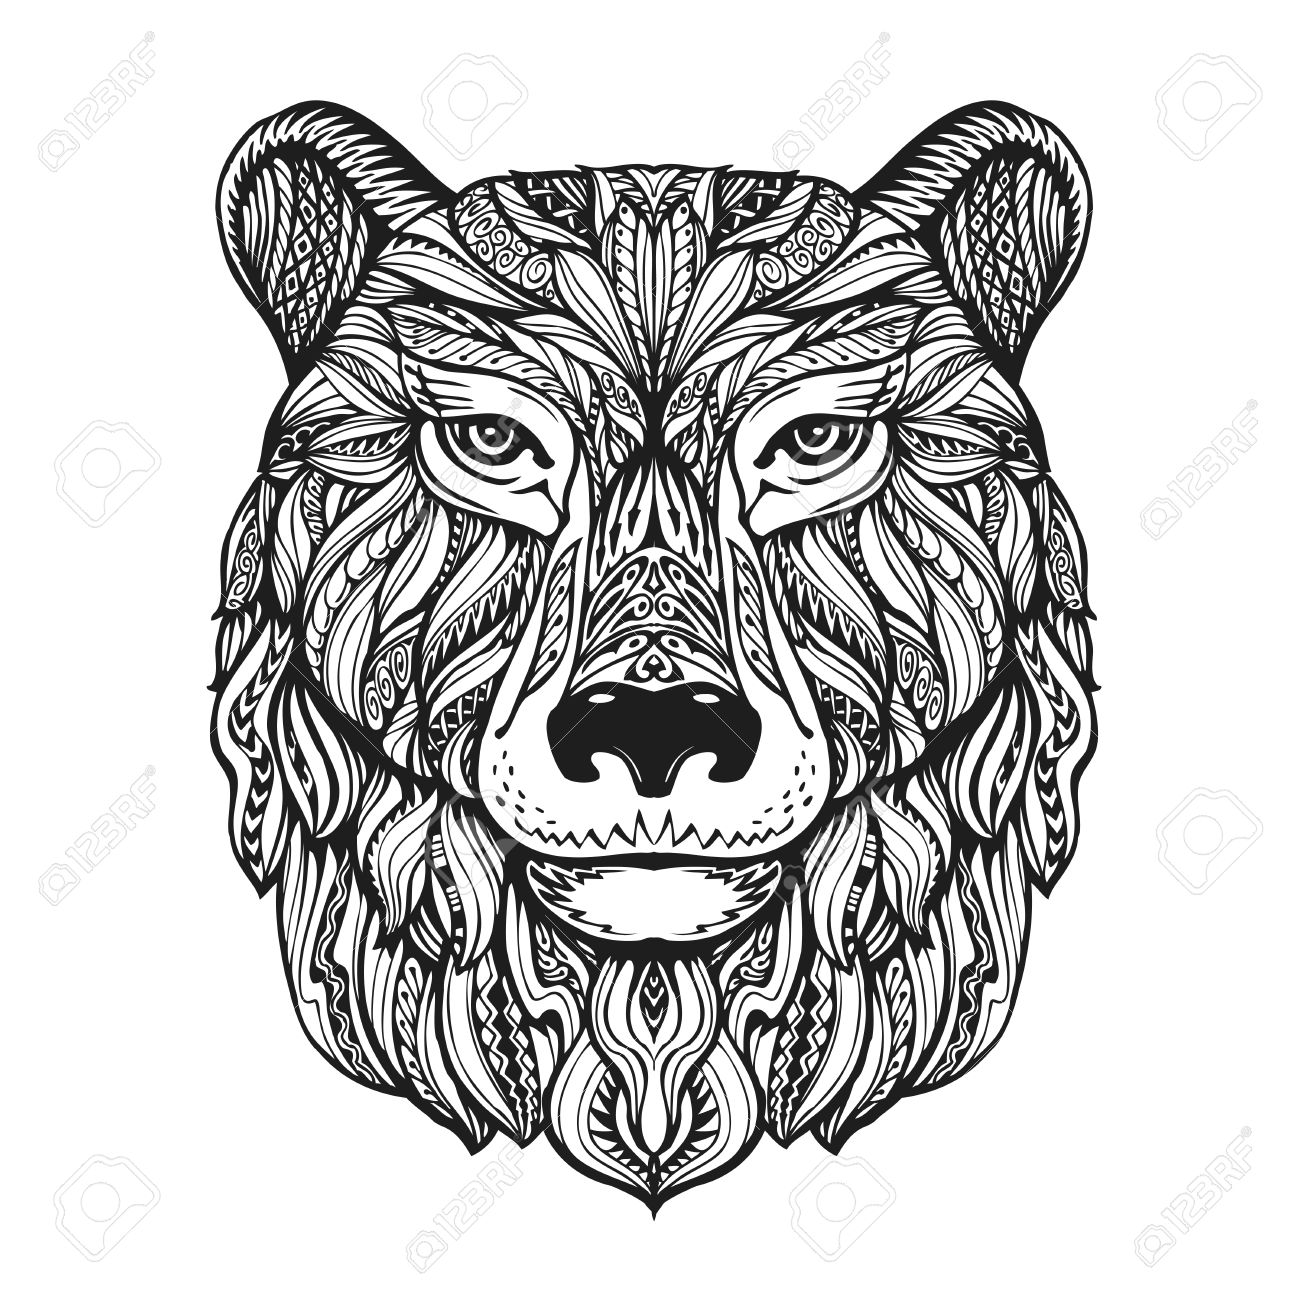 1300x1300 Bear Or Grizzly Head Isolated On White Background. Hand Drawn